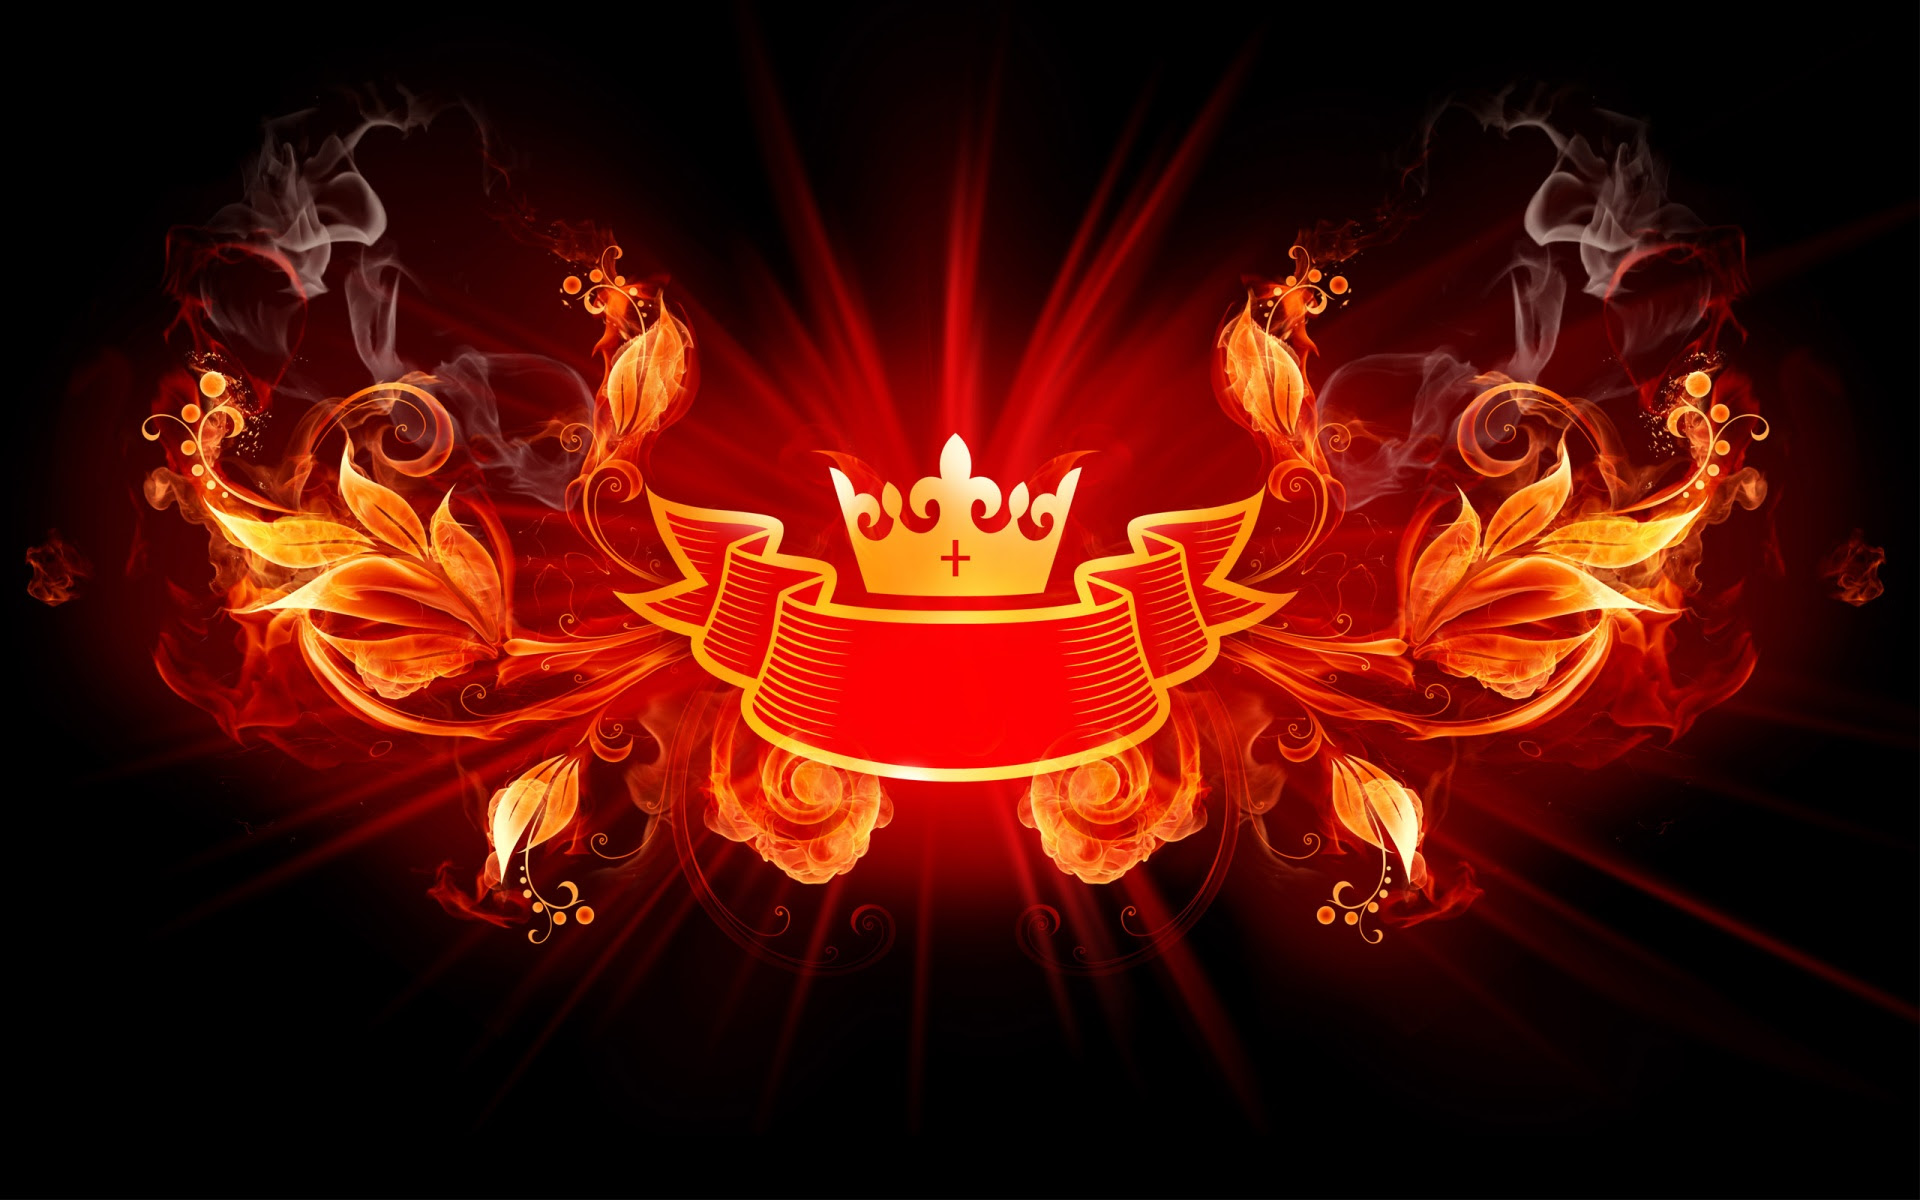 Download 600+ Background Hd King Paling Keren